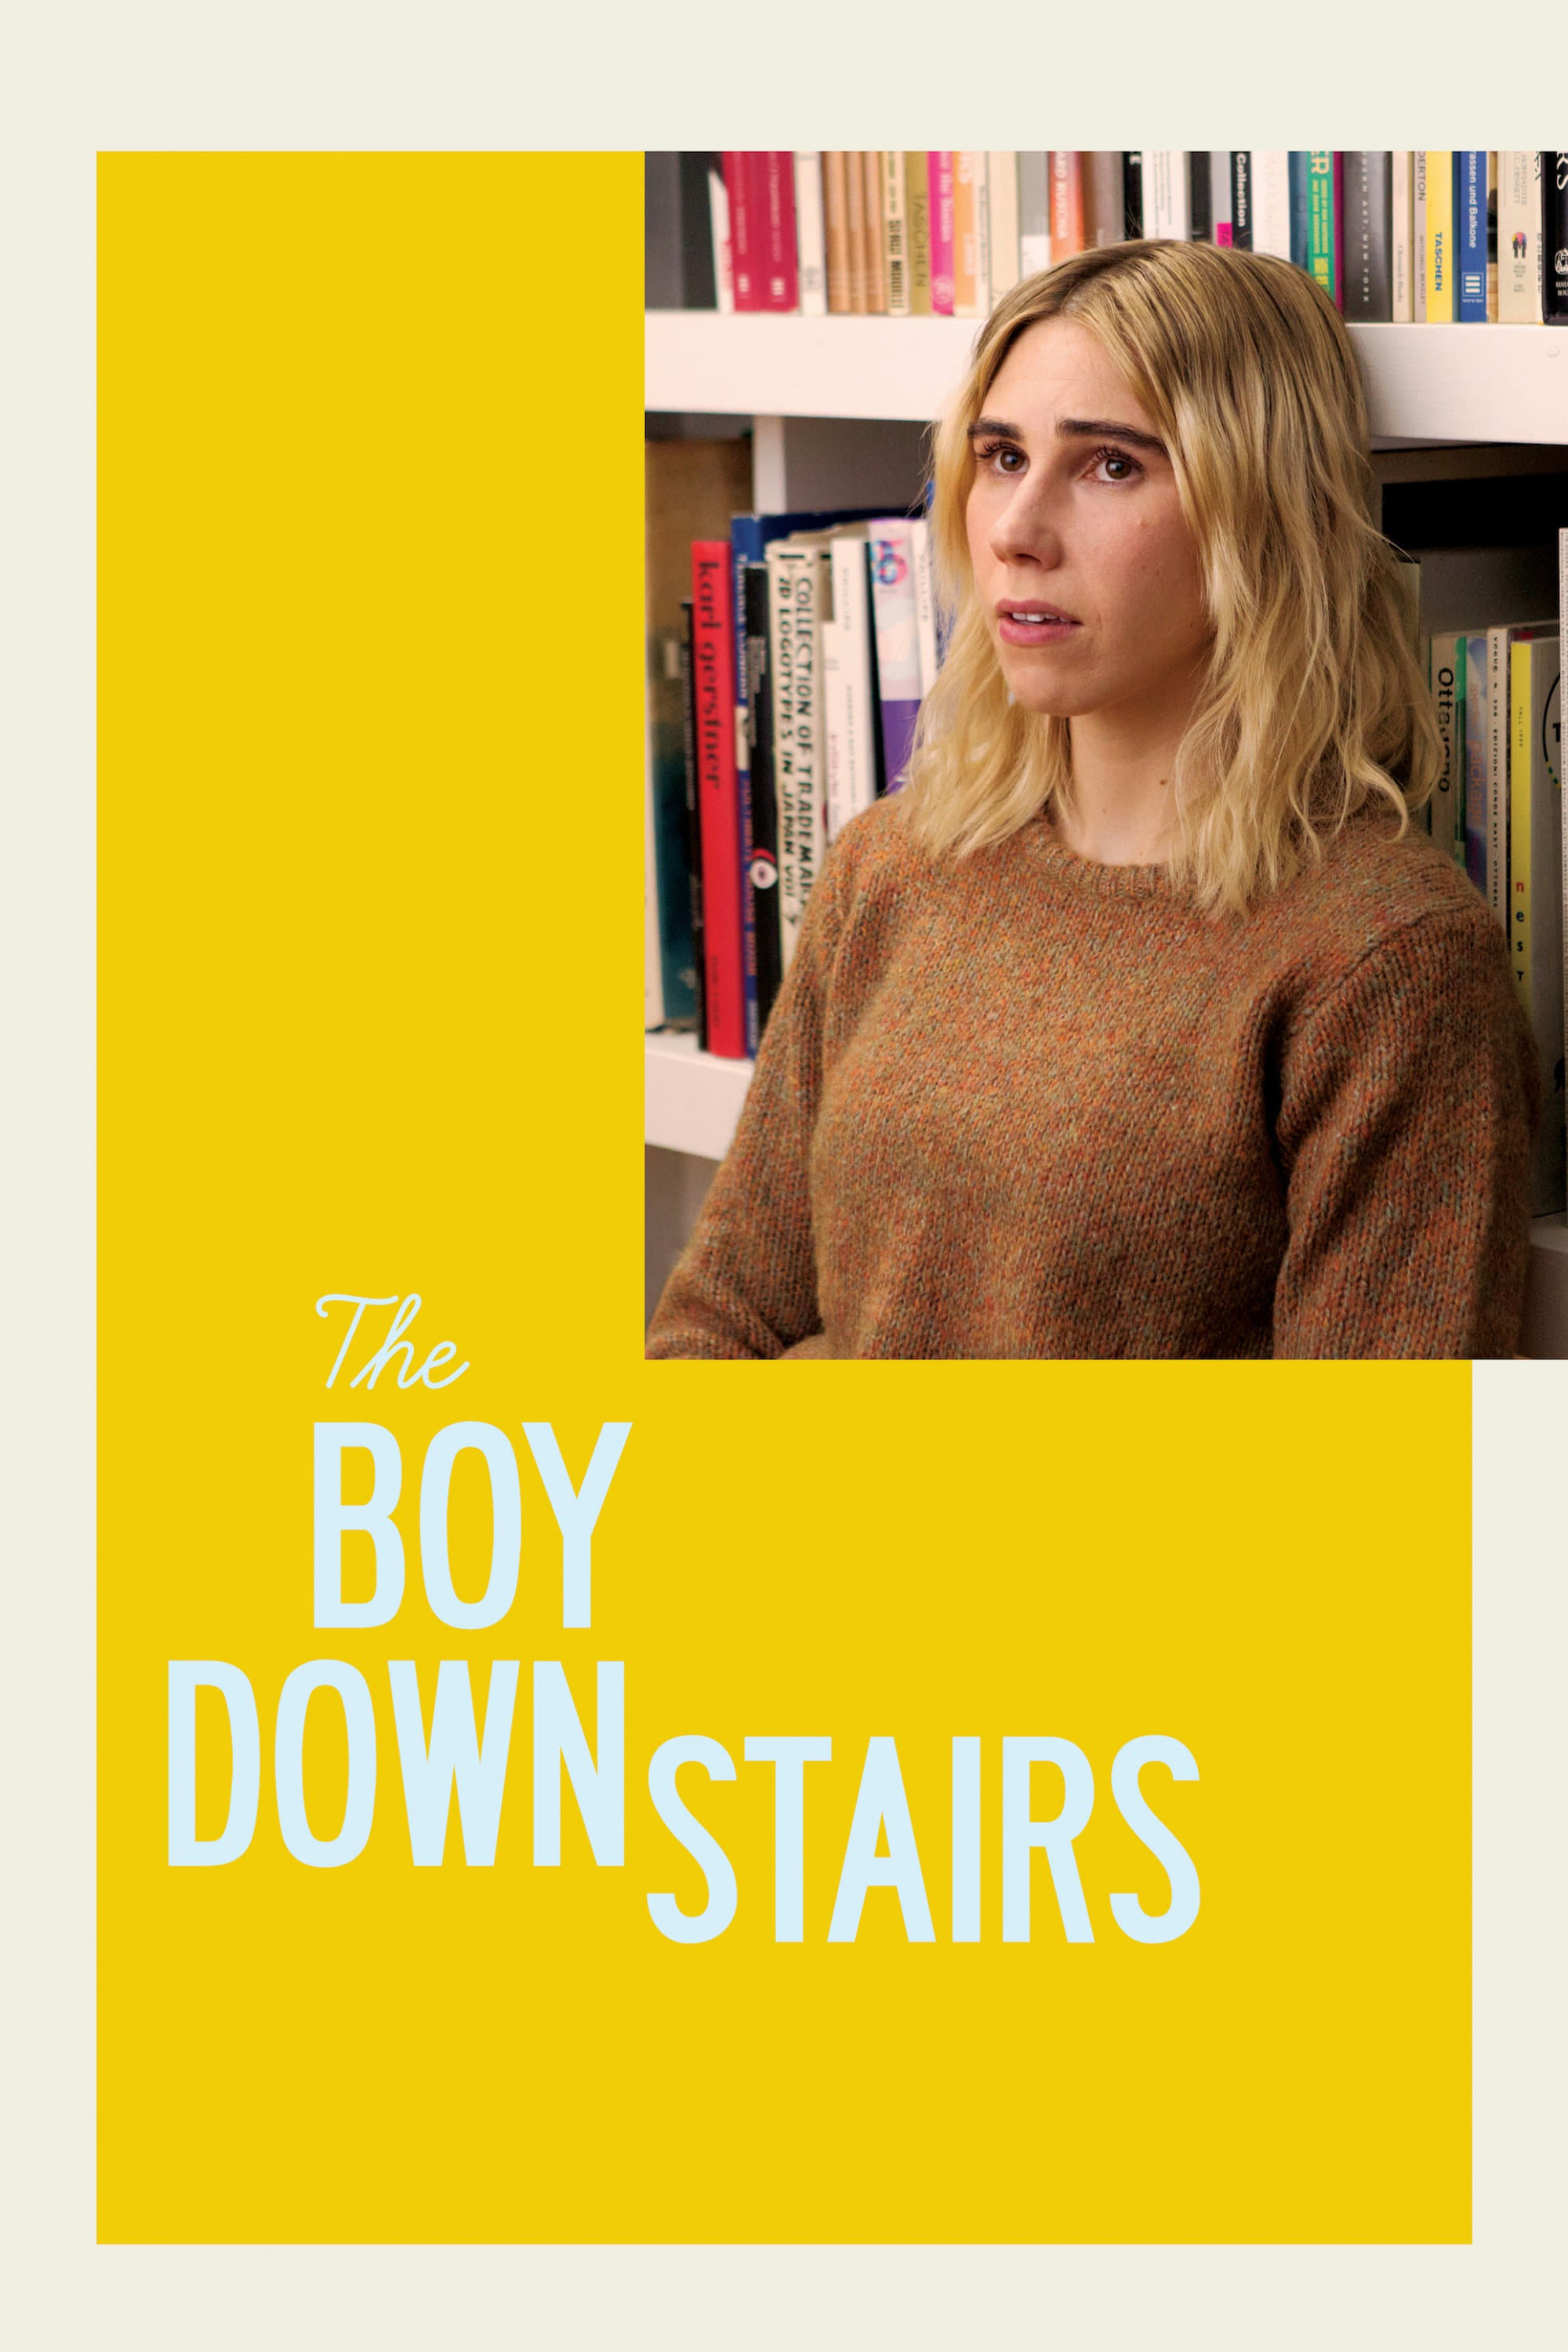 2. The Boy Downstairs -